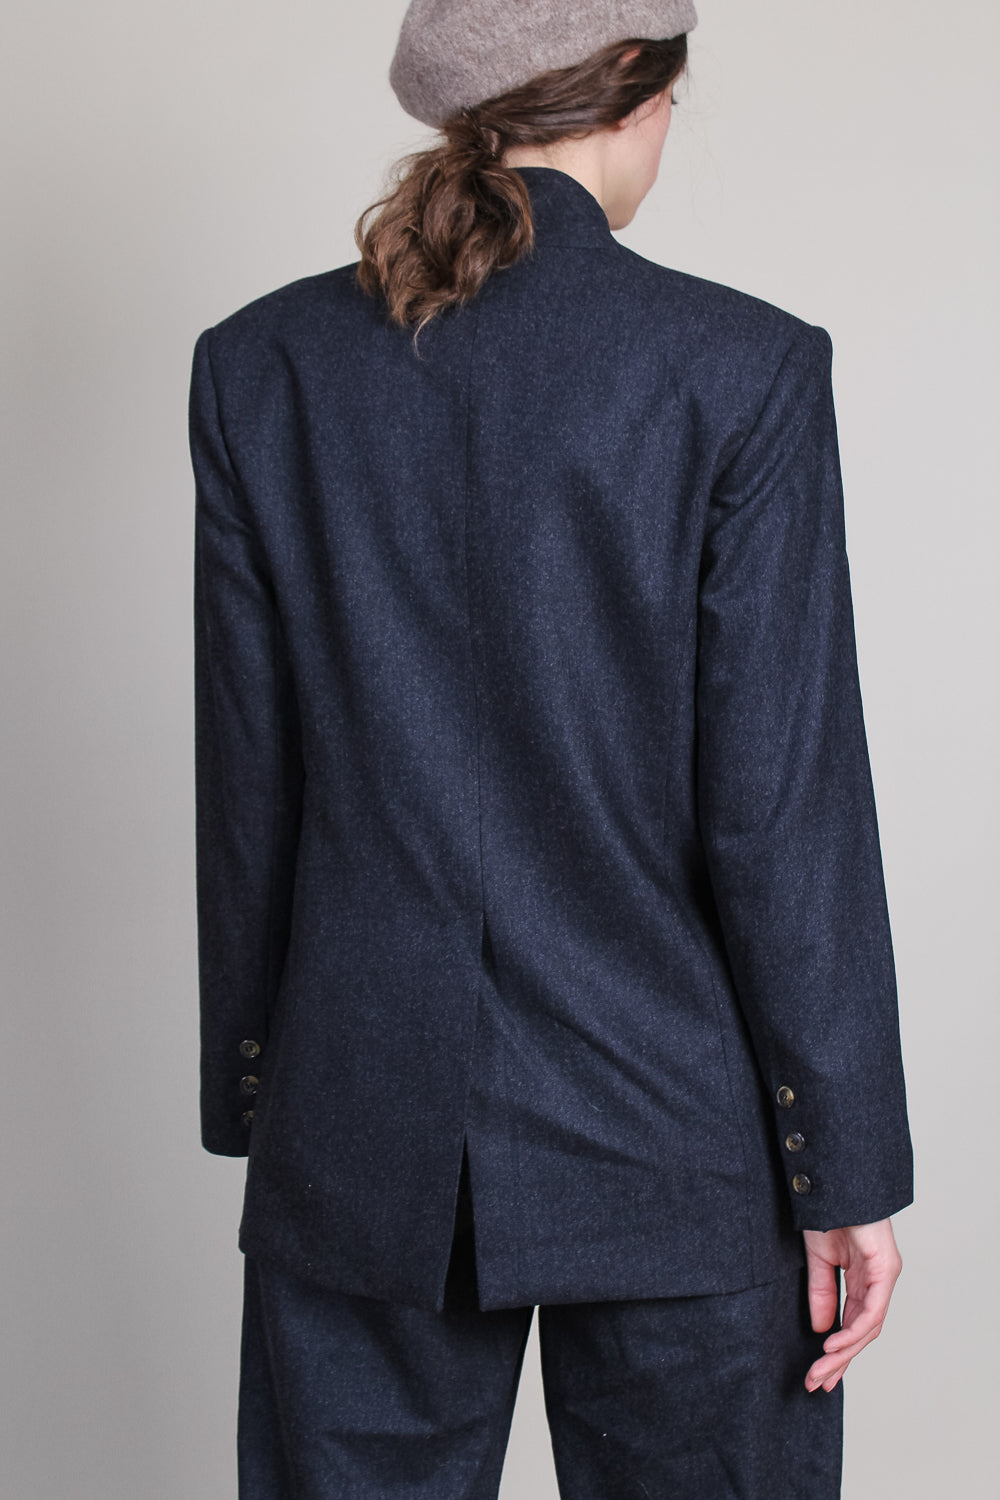 Folaca Blazer in Black Melange